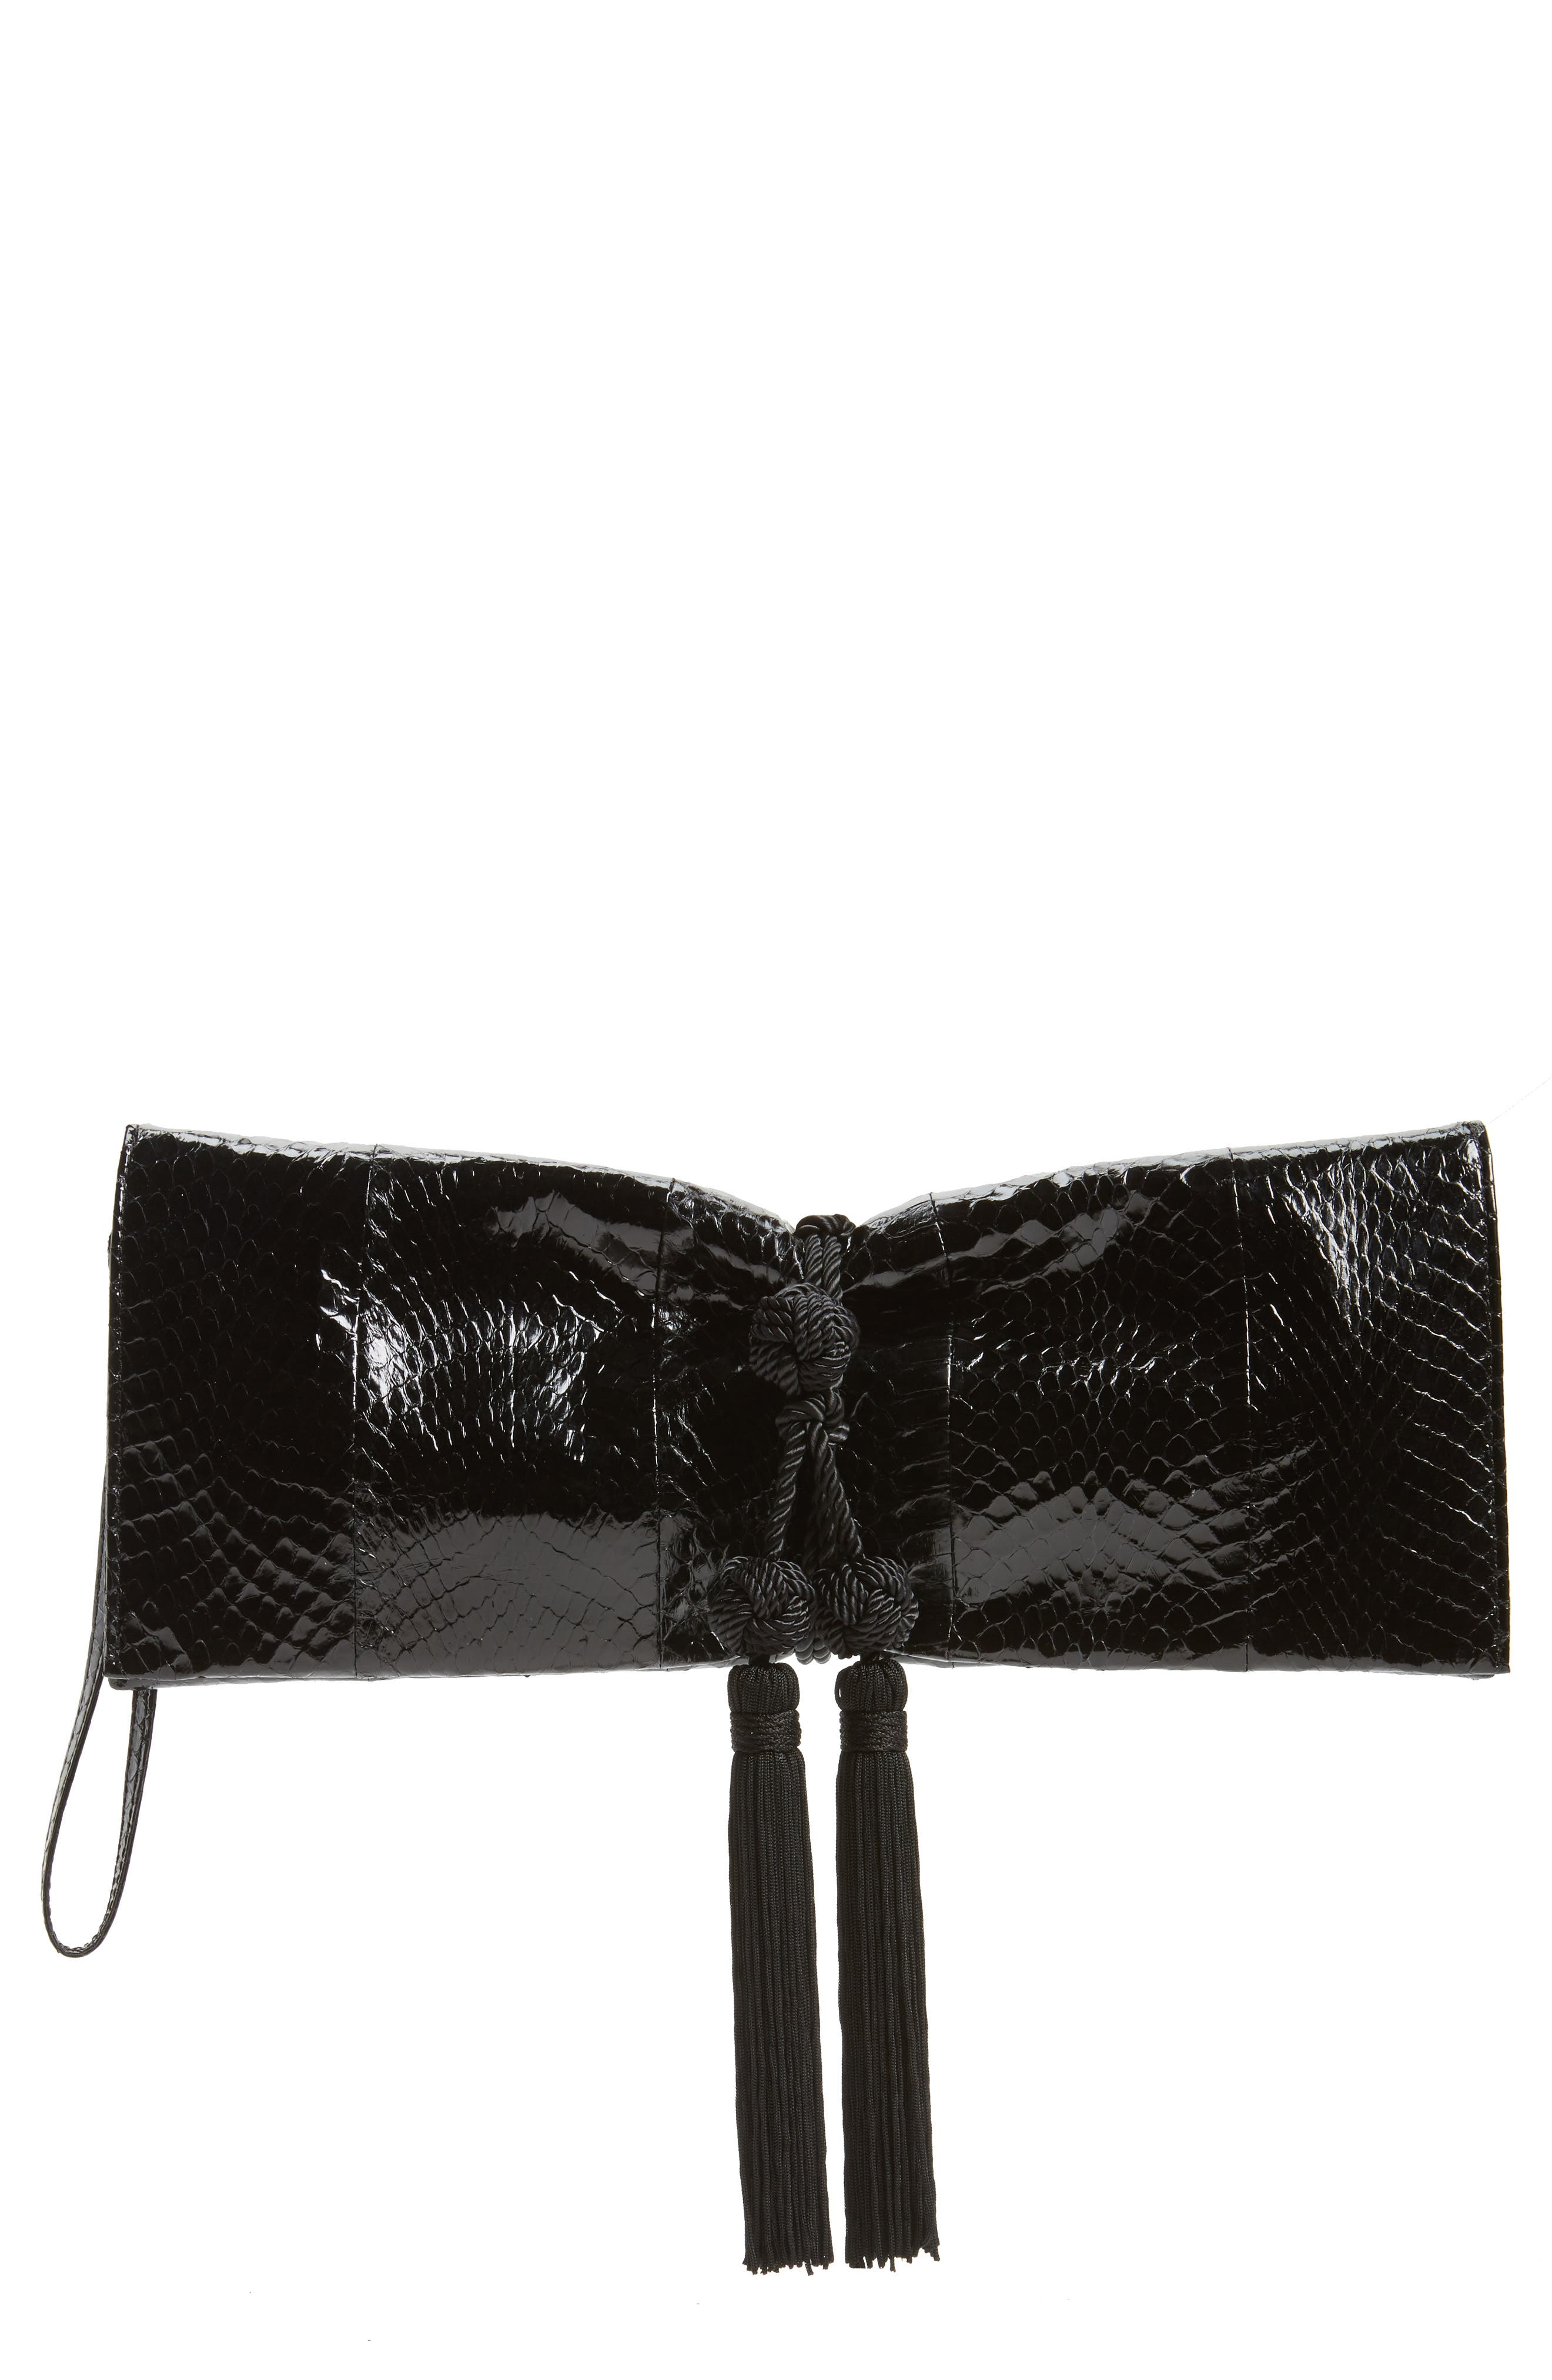 Circa Snake-Embossed Leather Clutch,                             Main thumbnail 1, color,                             001